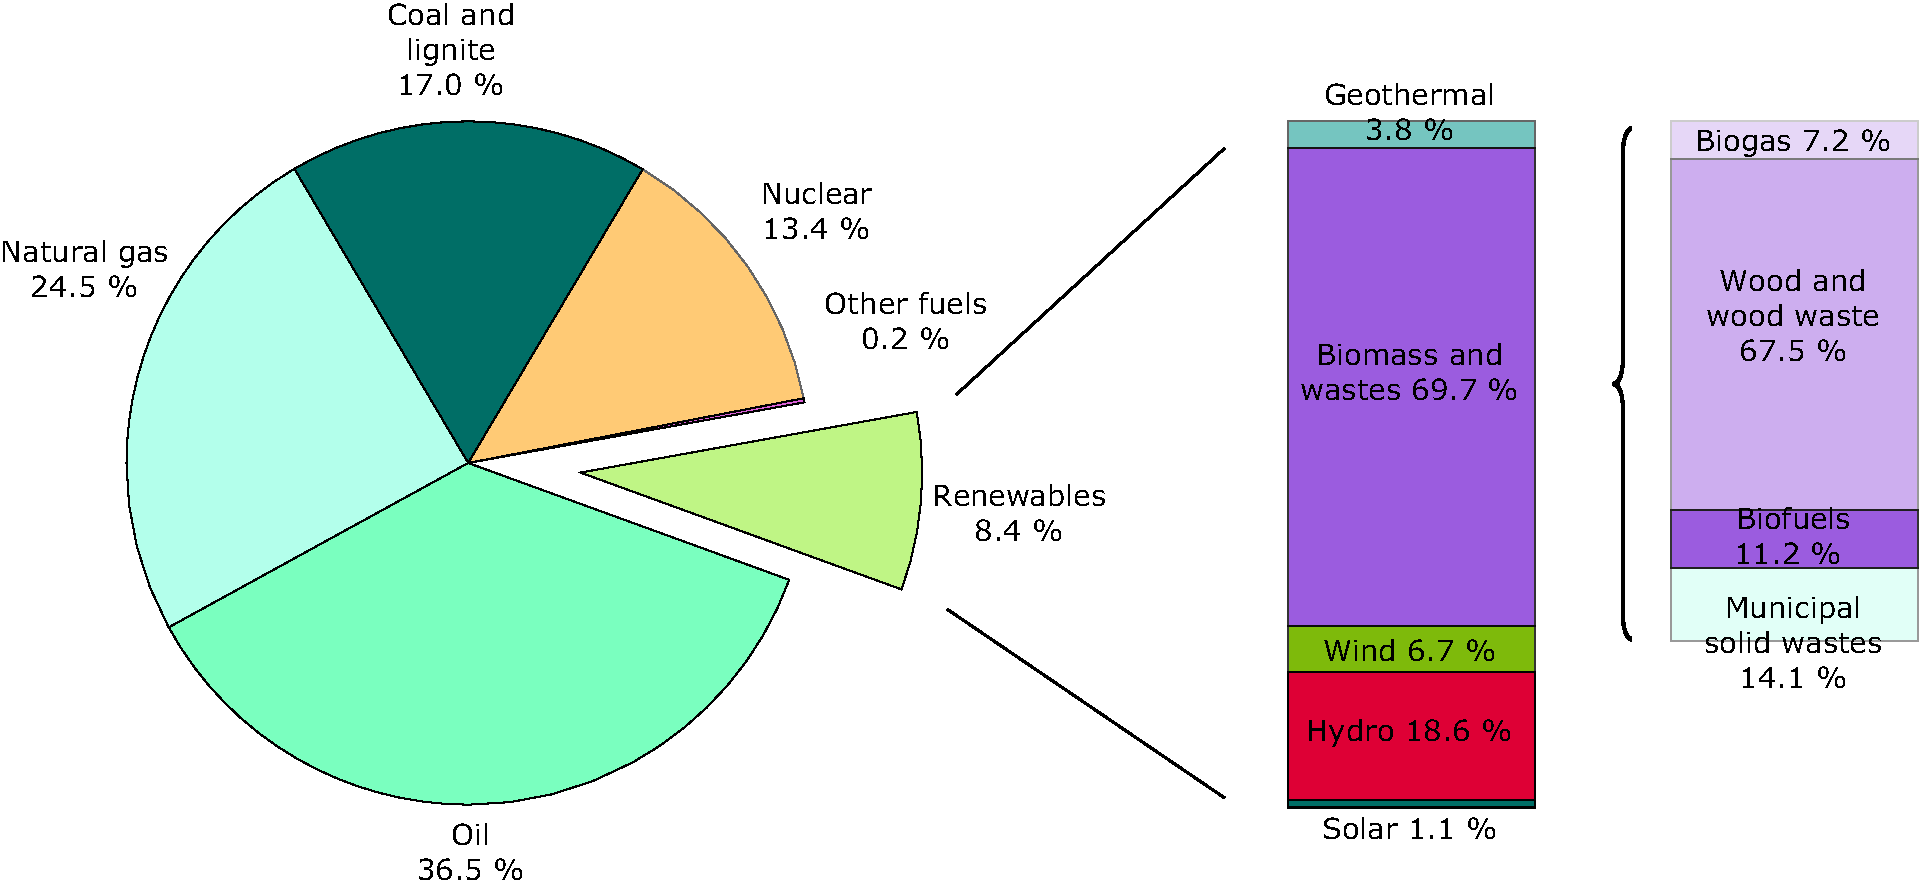 Total primary energy consumption by energy source in 2008, EU-27